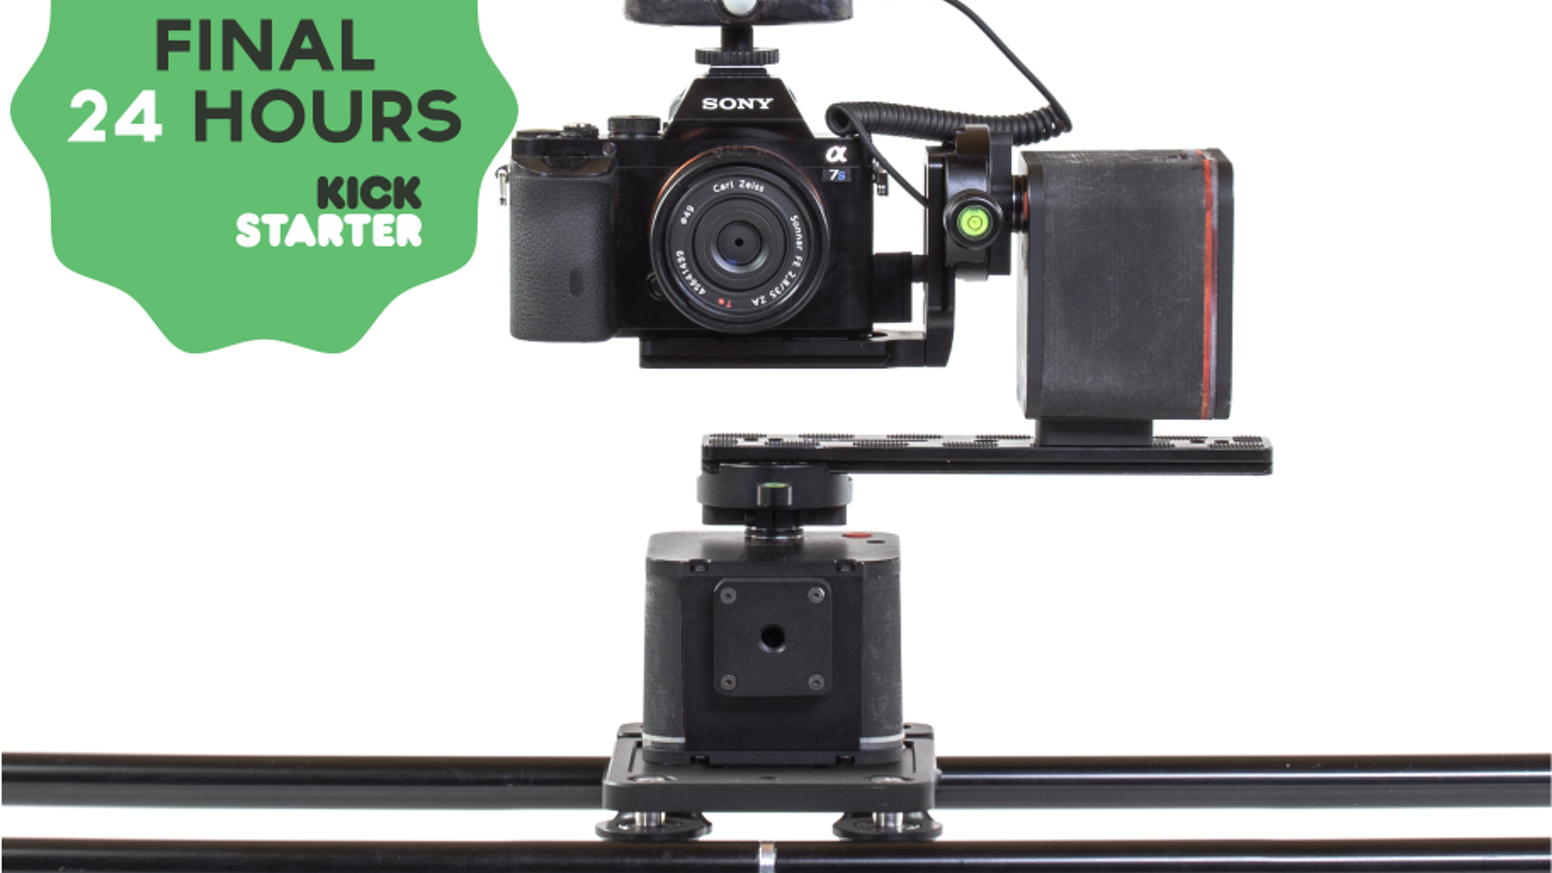 The most comprehensive and affordable camera motion control equipment to date. Create amazing video, timelapse or astrophotography.